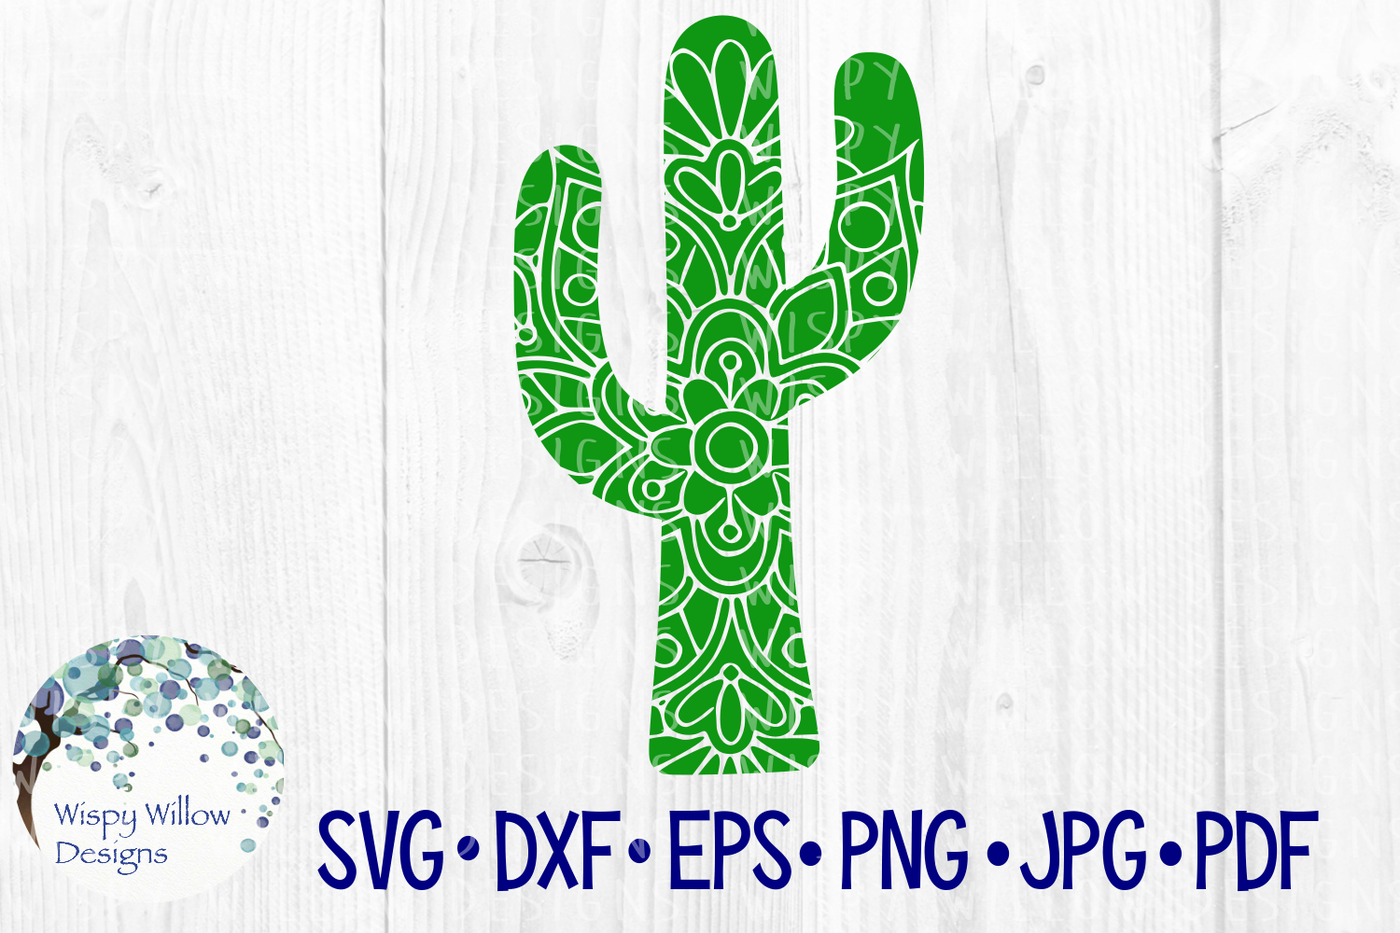 Cactus Mandala Svg Dxf Eps Png Jpg Pdf By Wispy Willow Designs